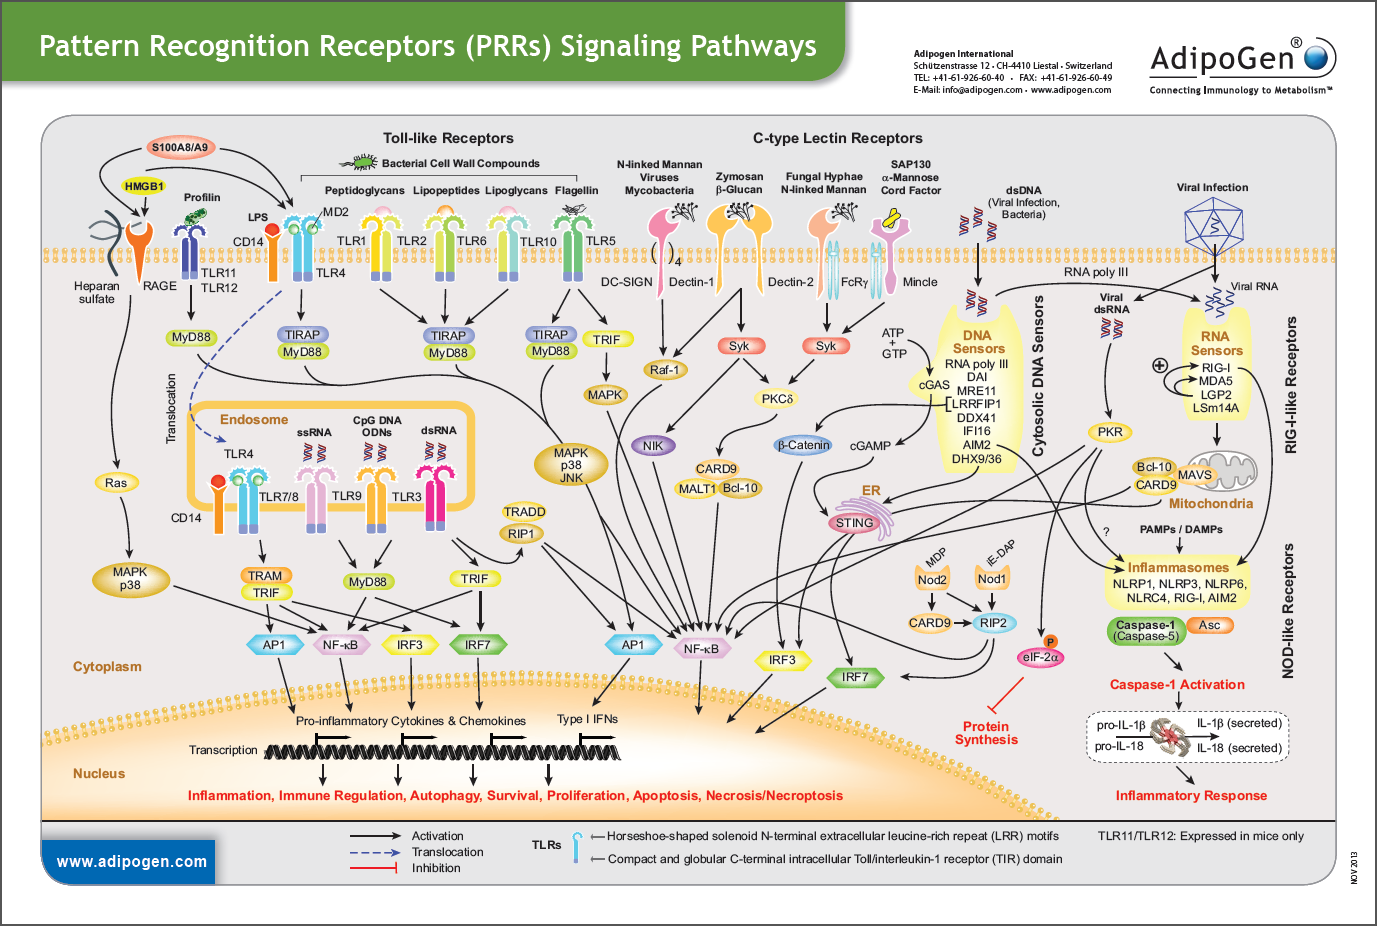 Pattern Recognition Receptors Signaling Wallchart 2013